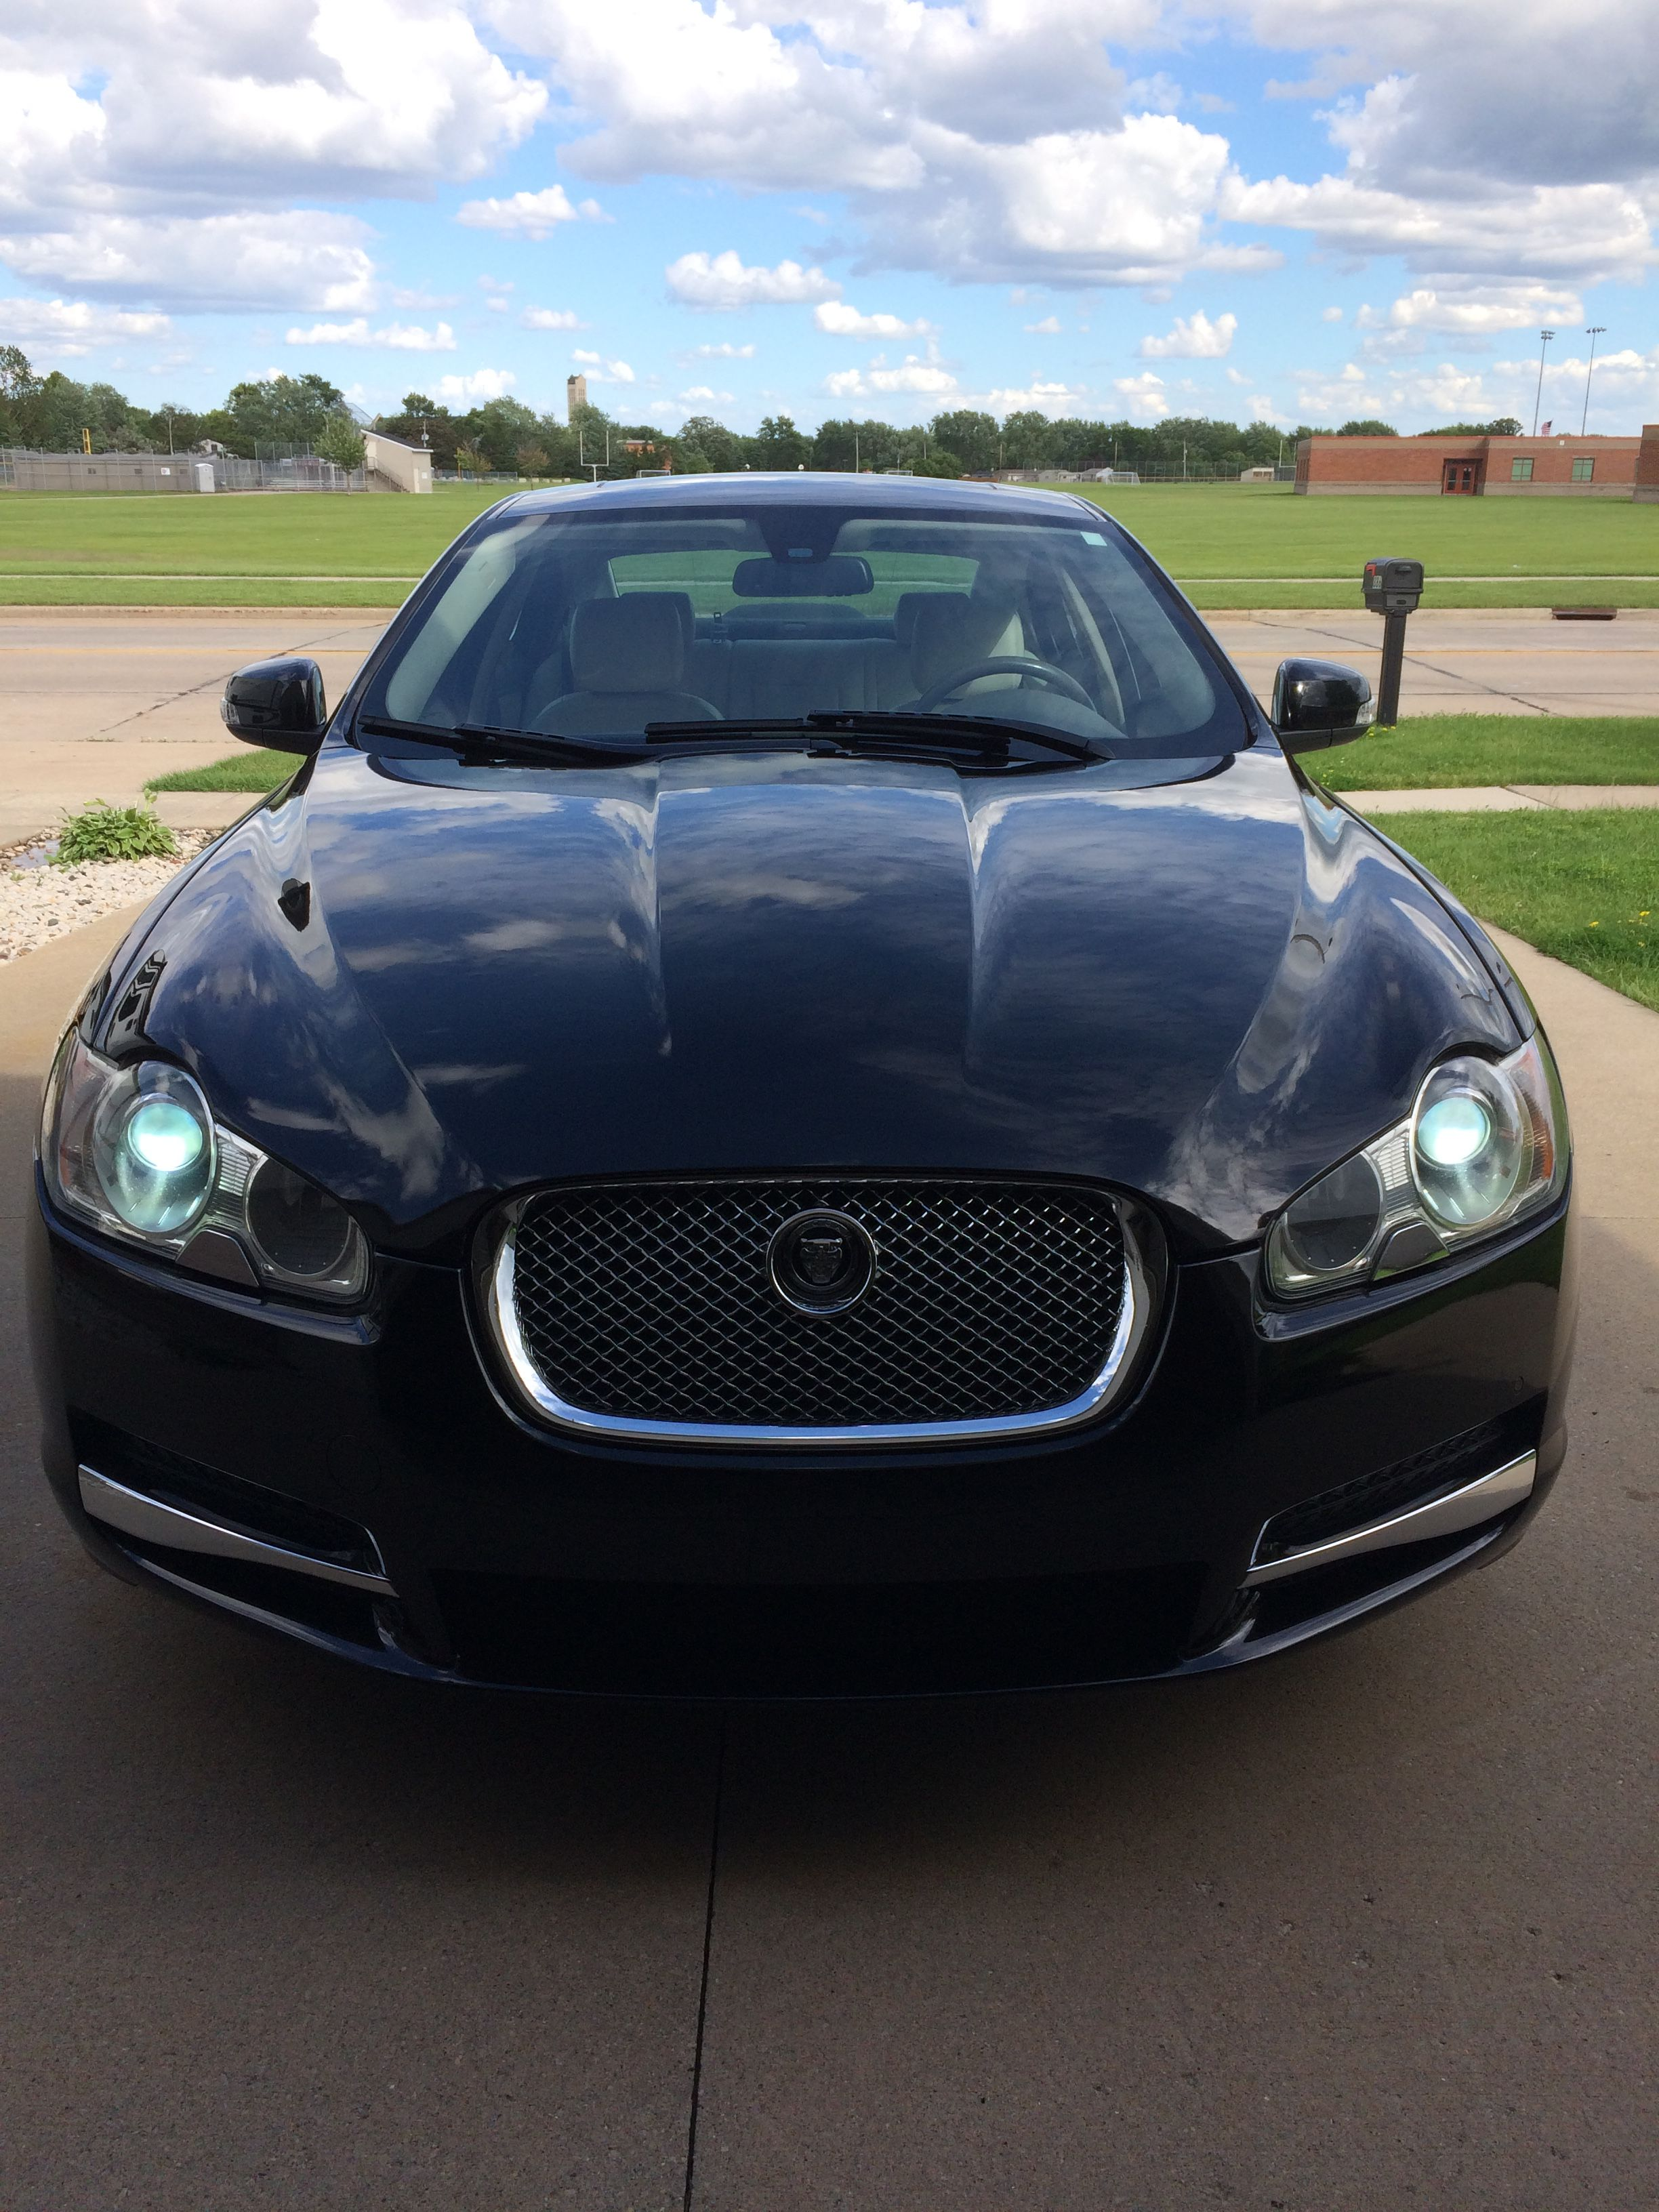 speed xf cars jaguar supercharged top for used sale